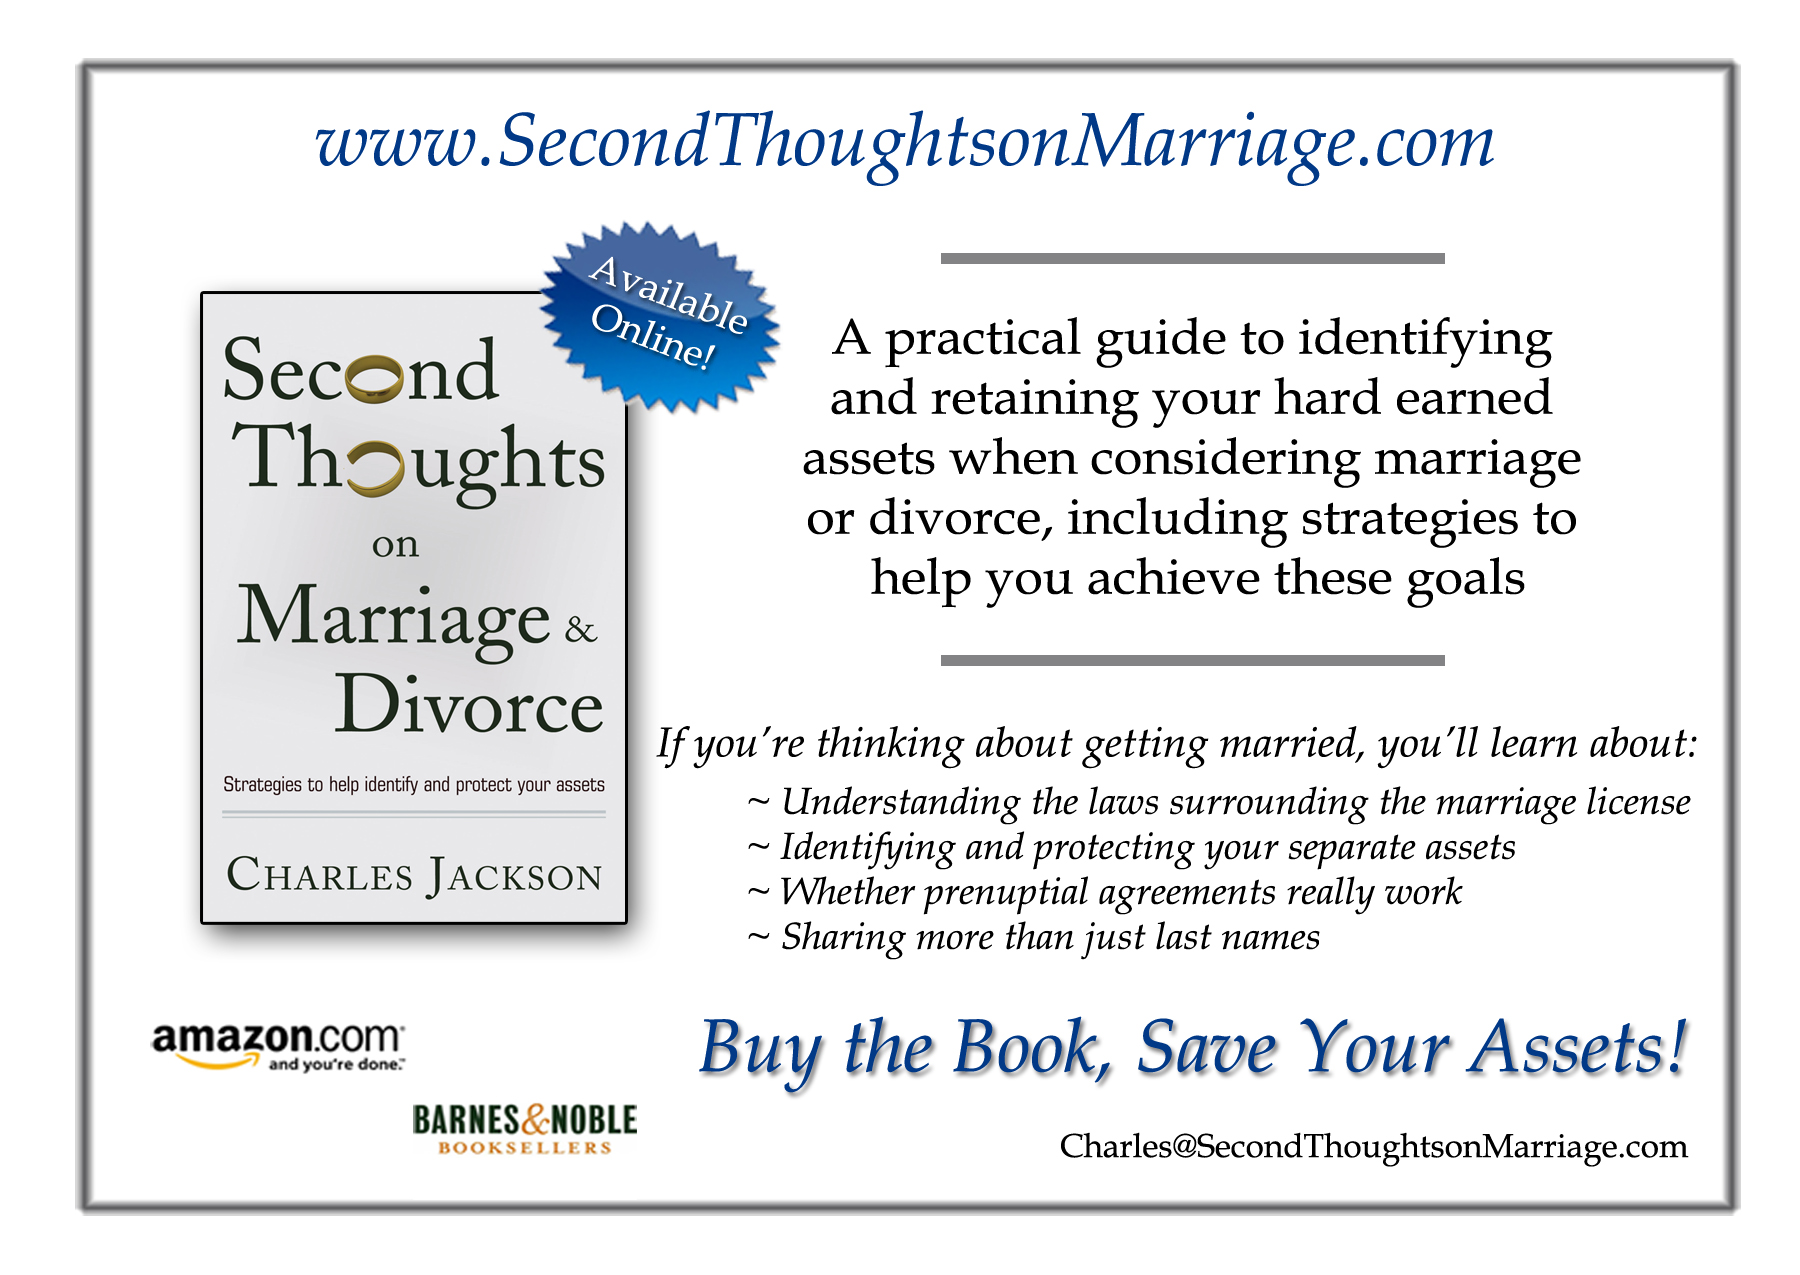 second thoughts on marriage and divorce